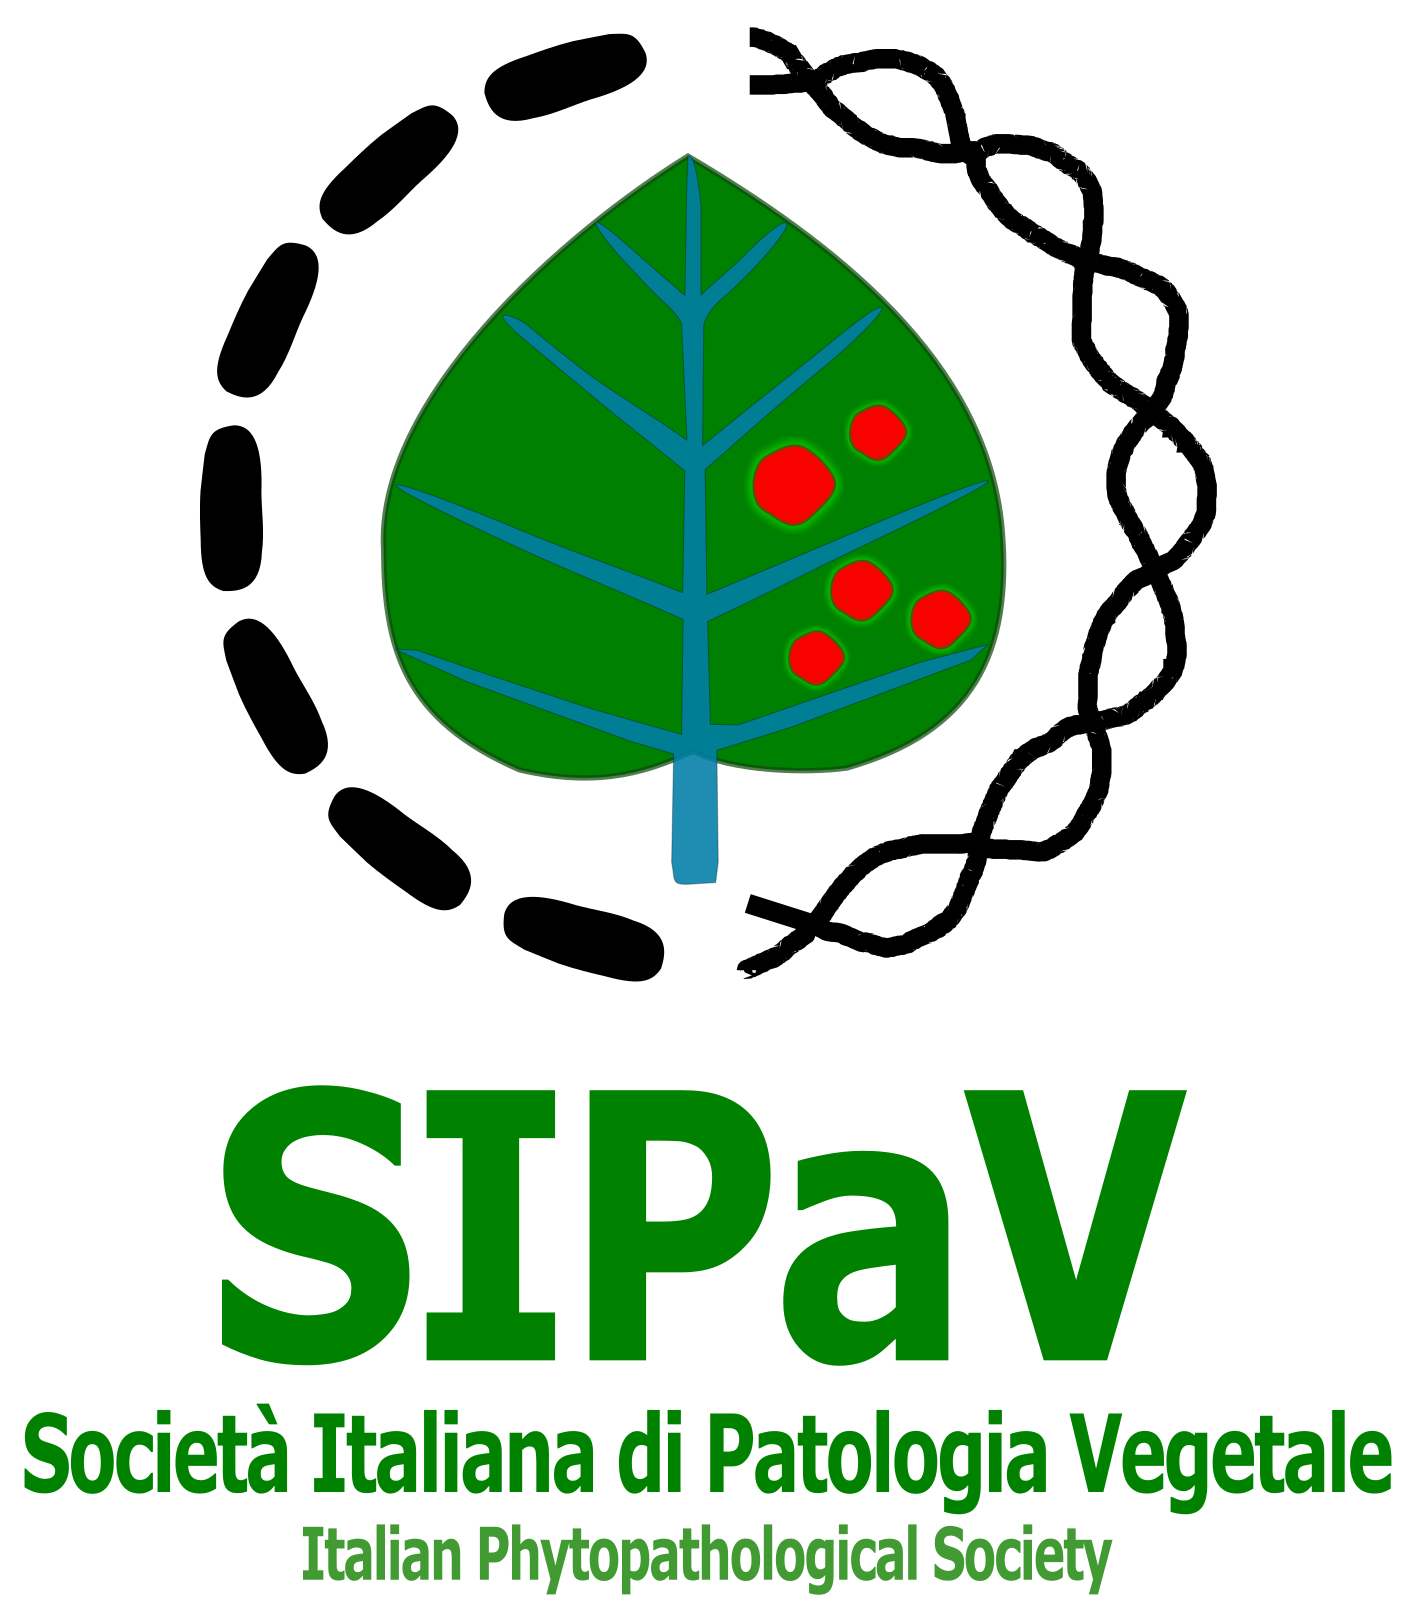 The Italian Phytopathological Society / La Società Italiana di Patologia Vegetale (S.I.Pa.V.)